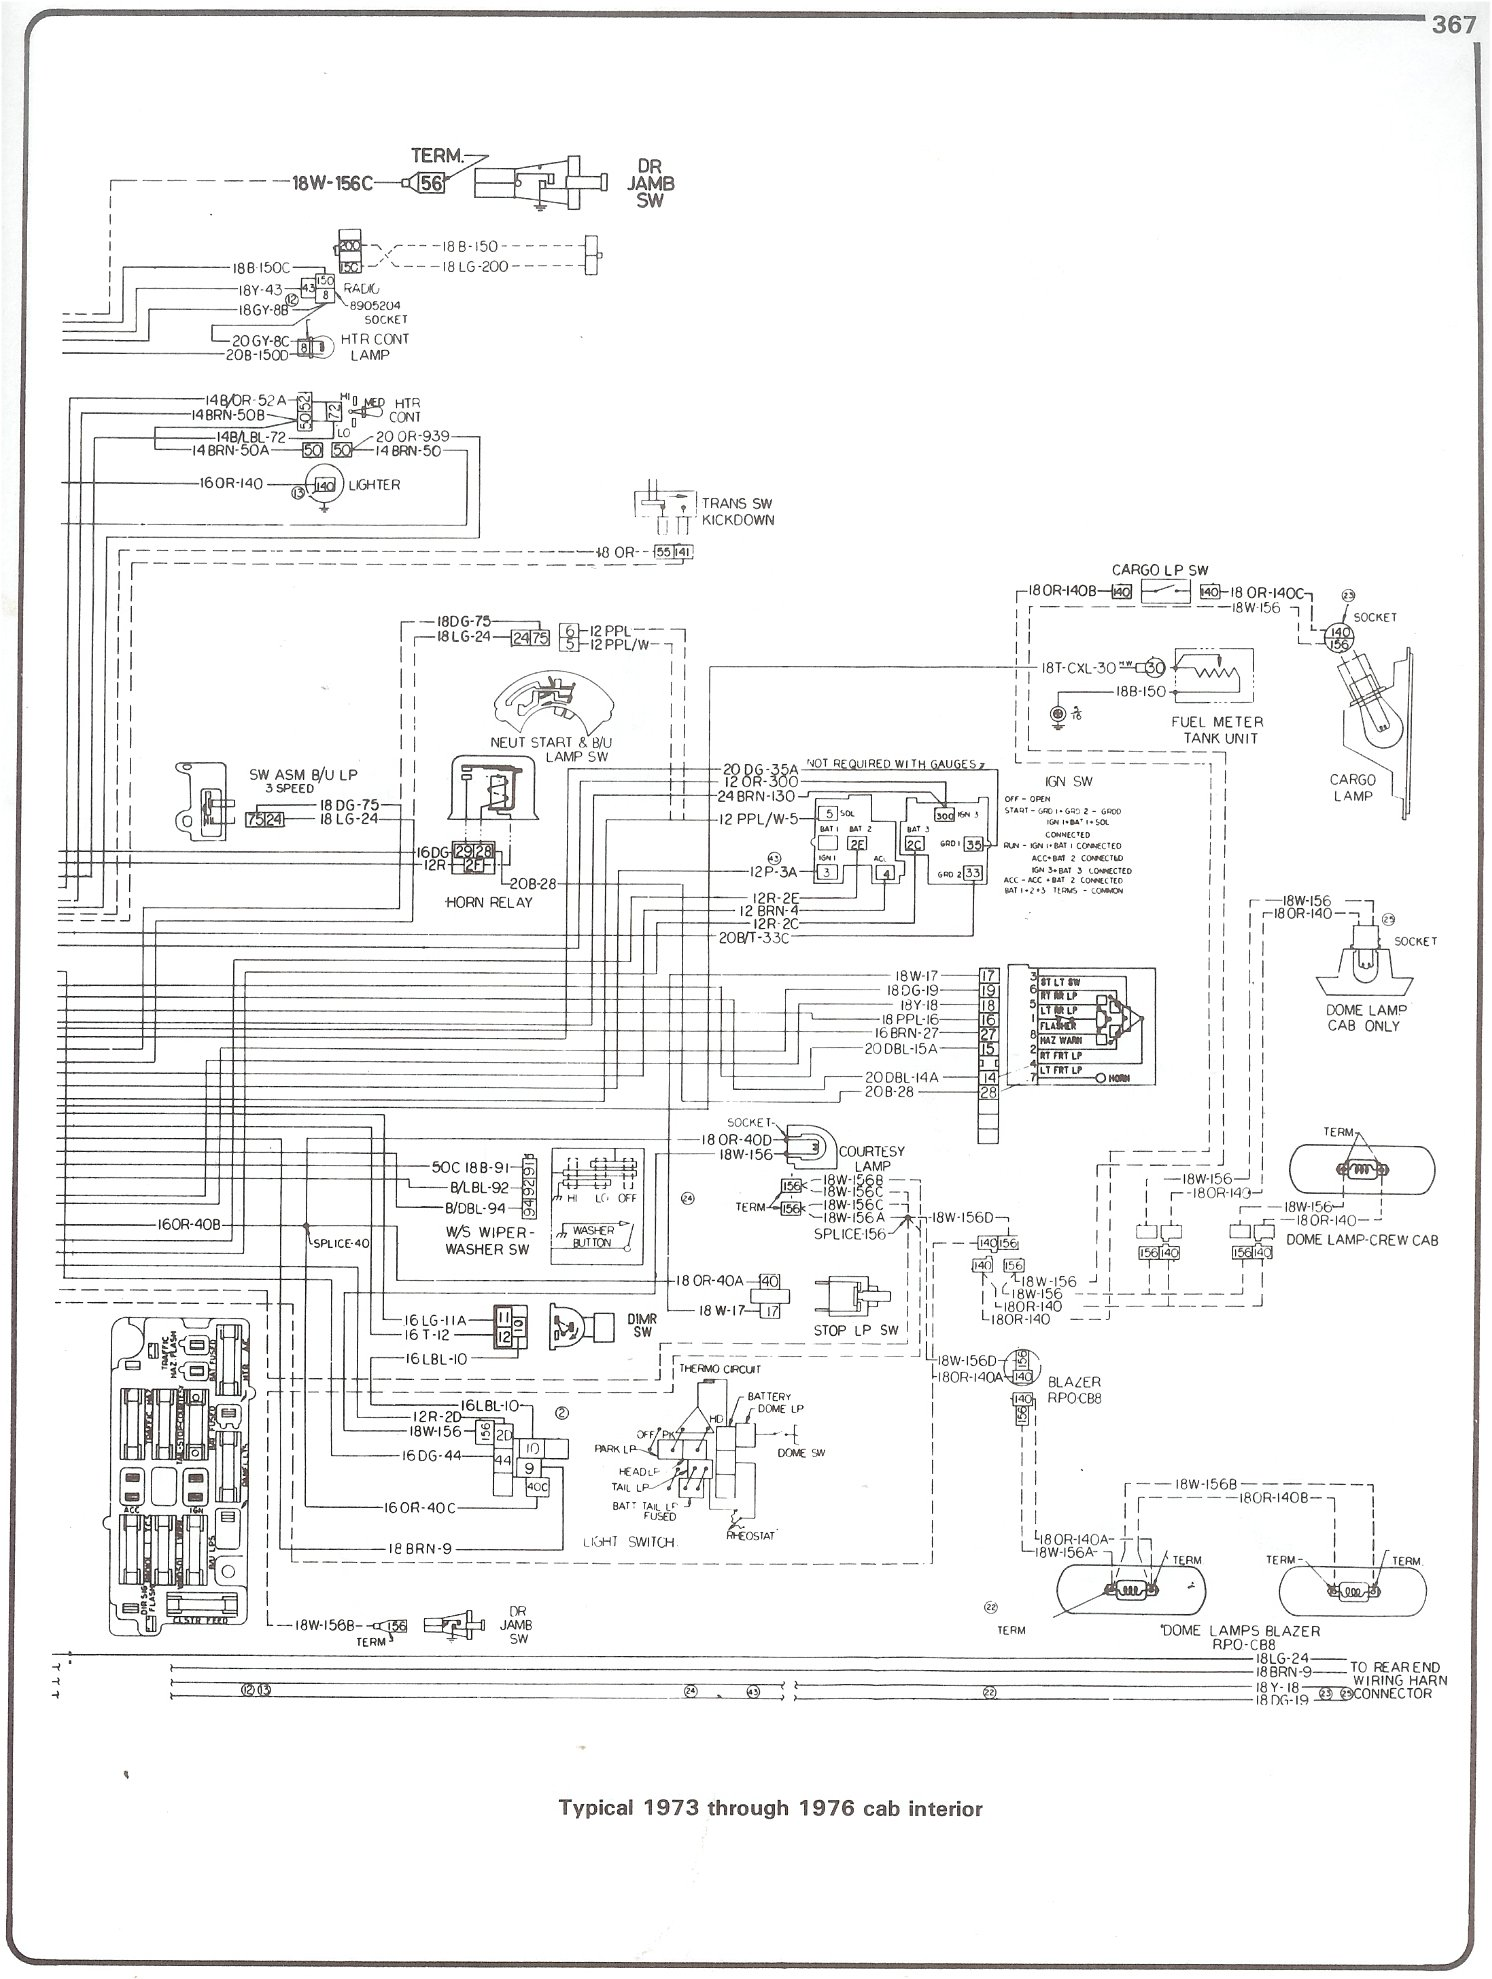 73 76_cab_inter complete 73 87 wiring diagrams 1977 chevy truck wiring diagram at edmiracle.co